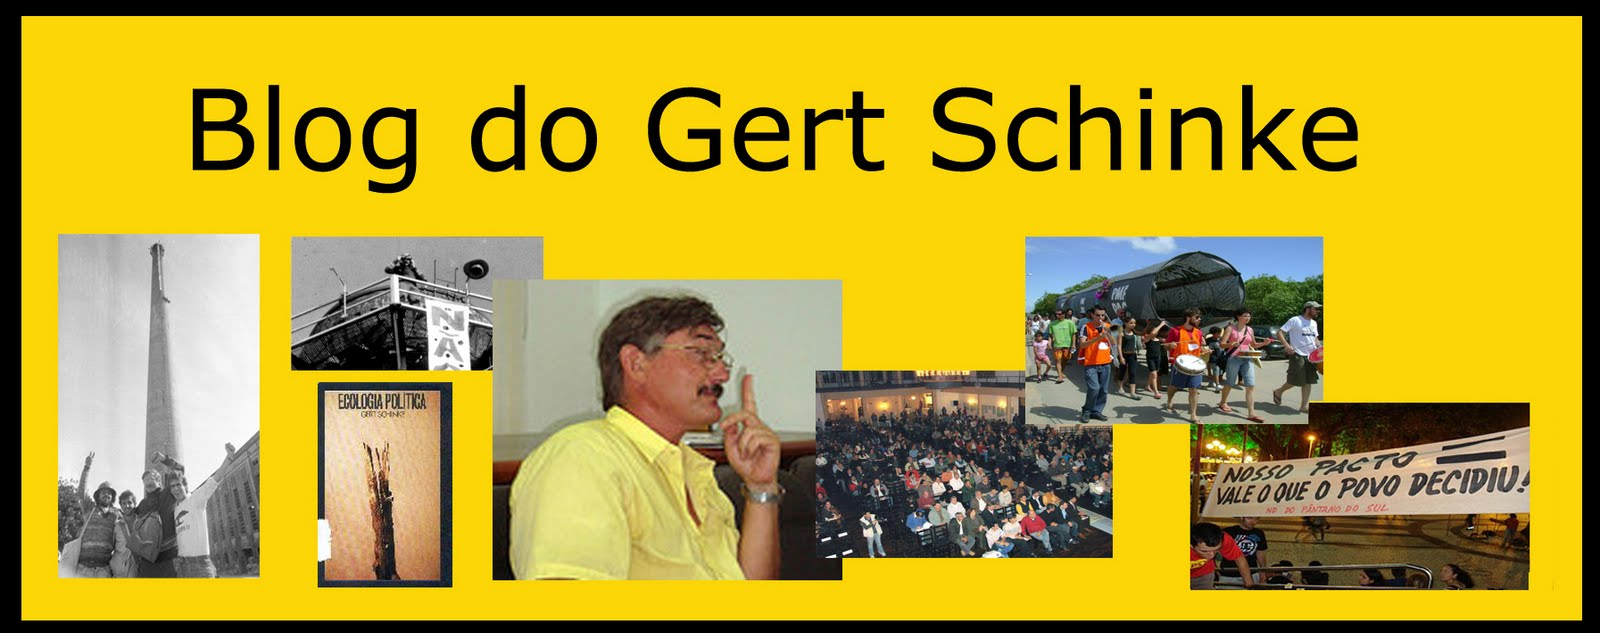 Blog do Gert Schinke